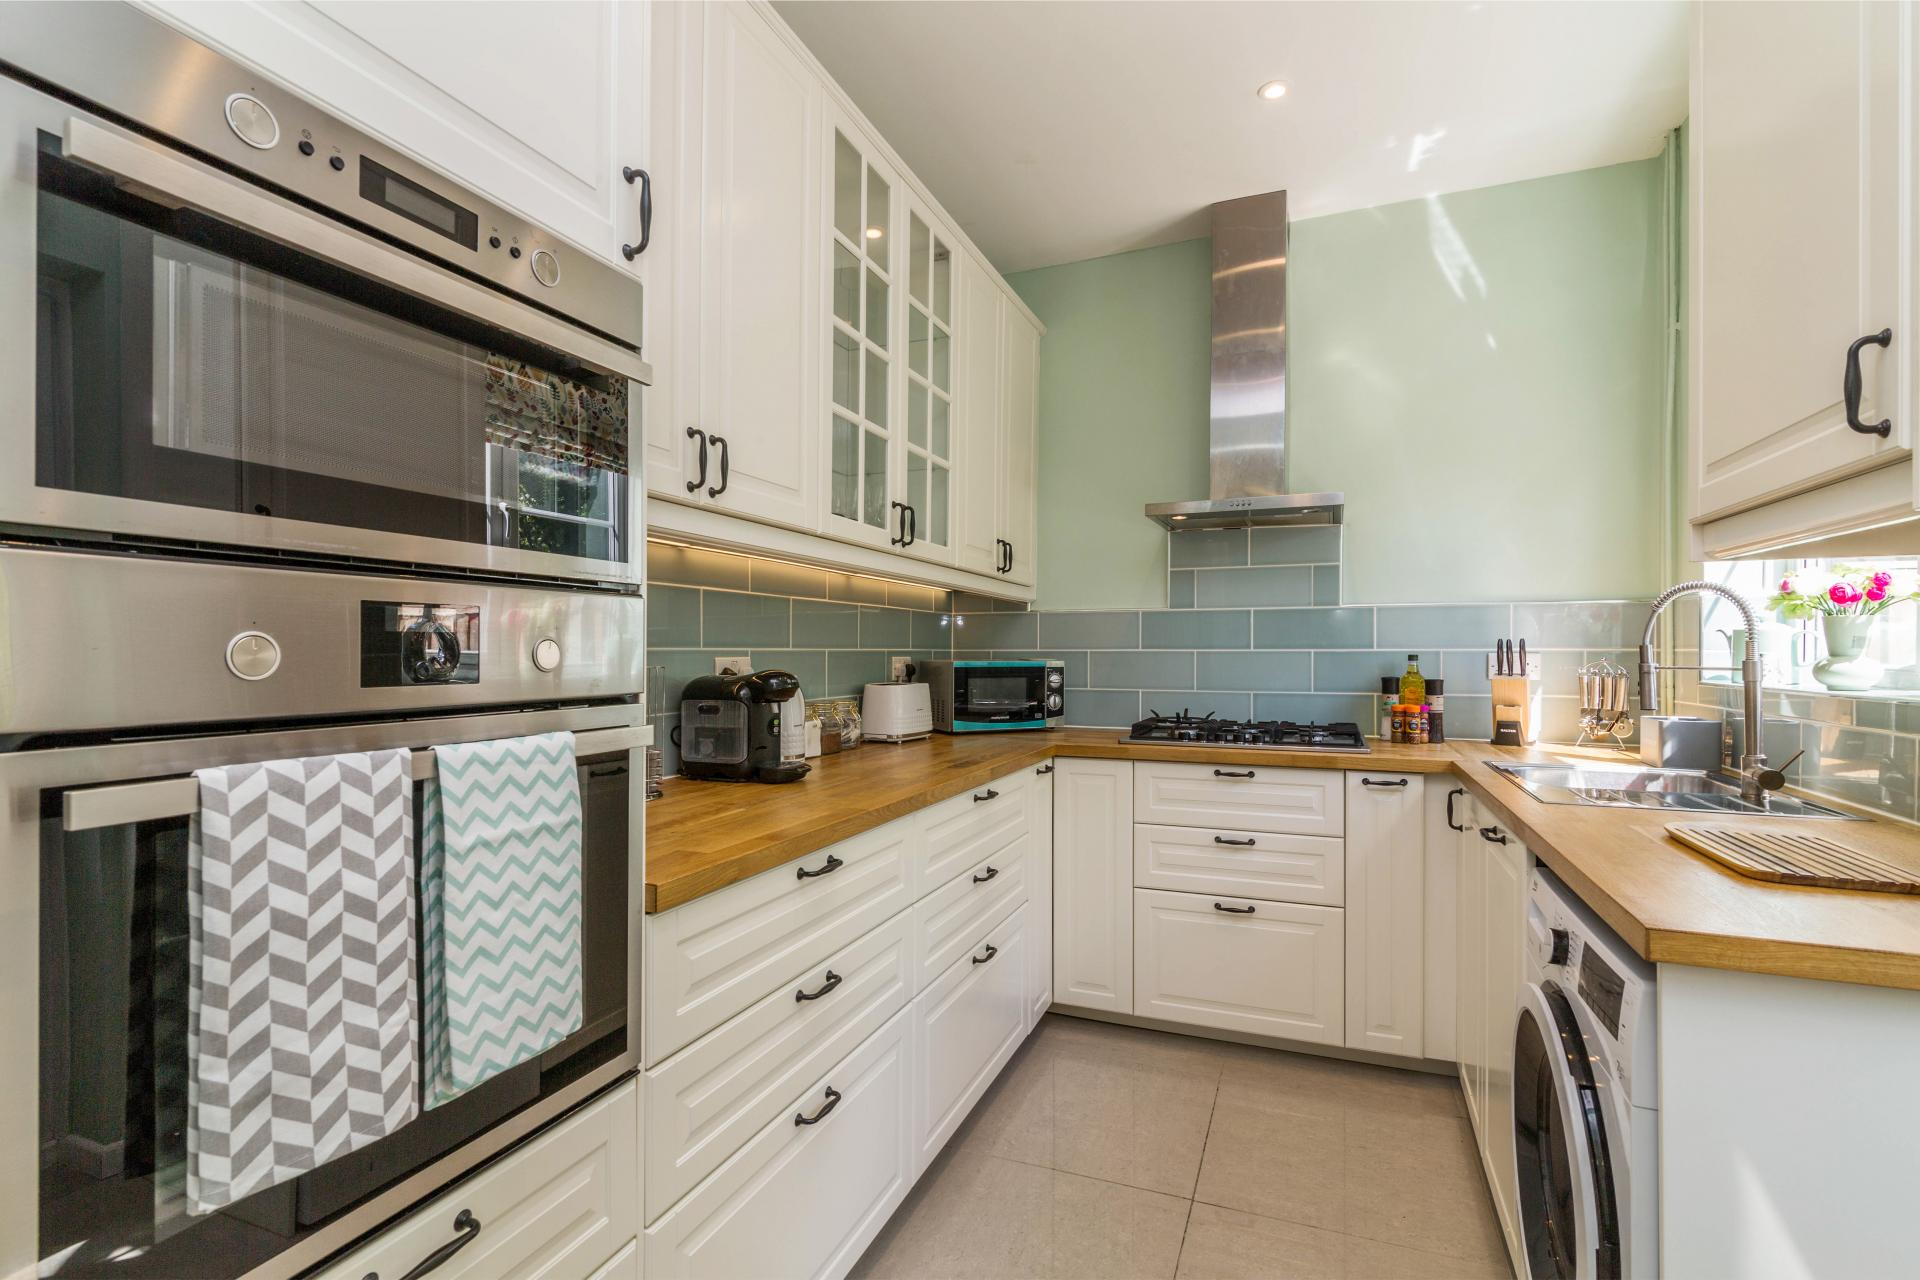 Kitchen at Mapperley House, Mapperley Park, Nottingham - Citybase Apartments